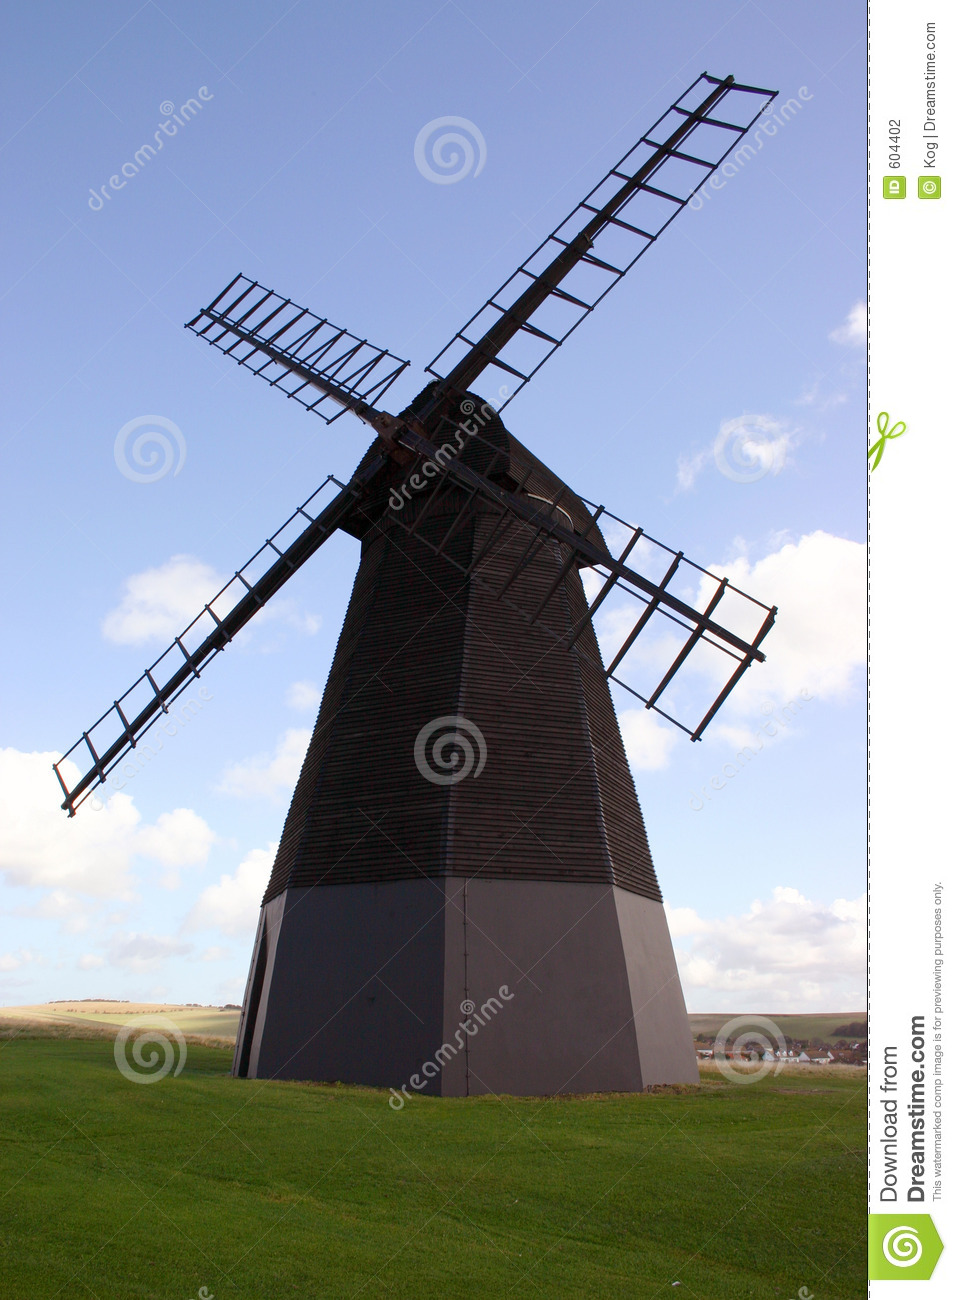 De Windmolen van Rottingdean